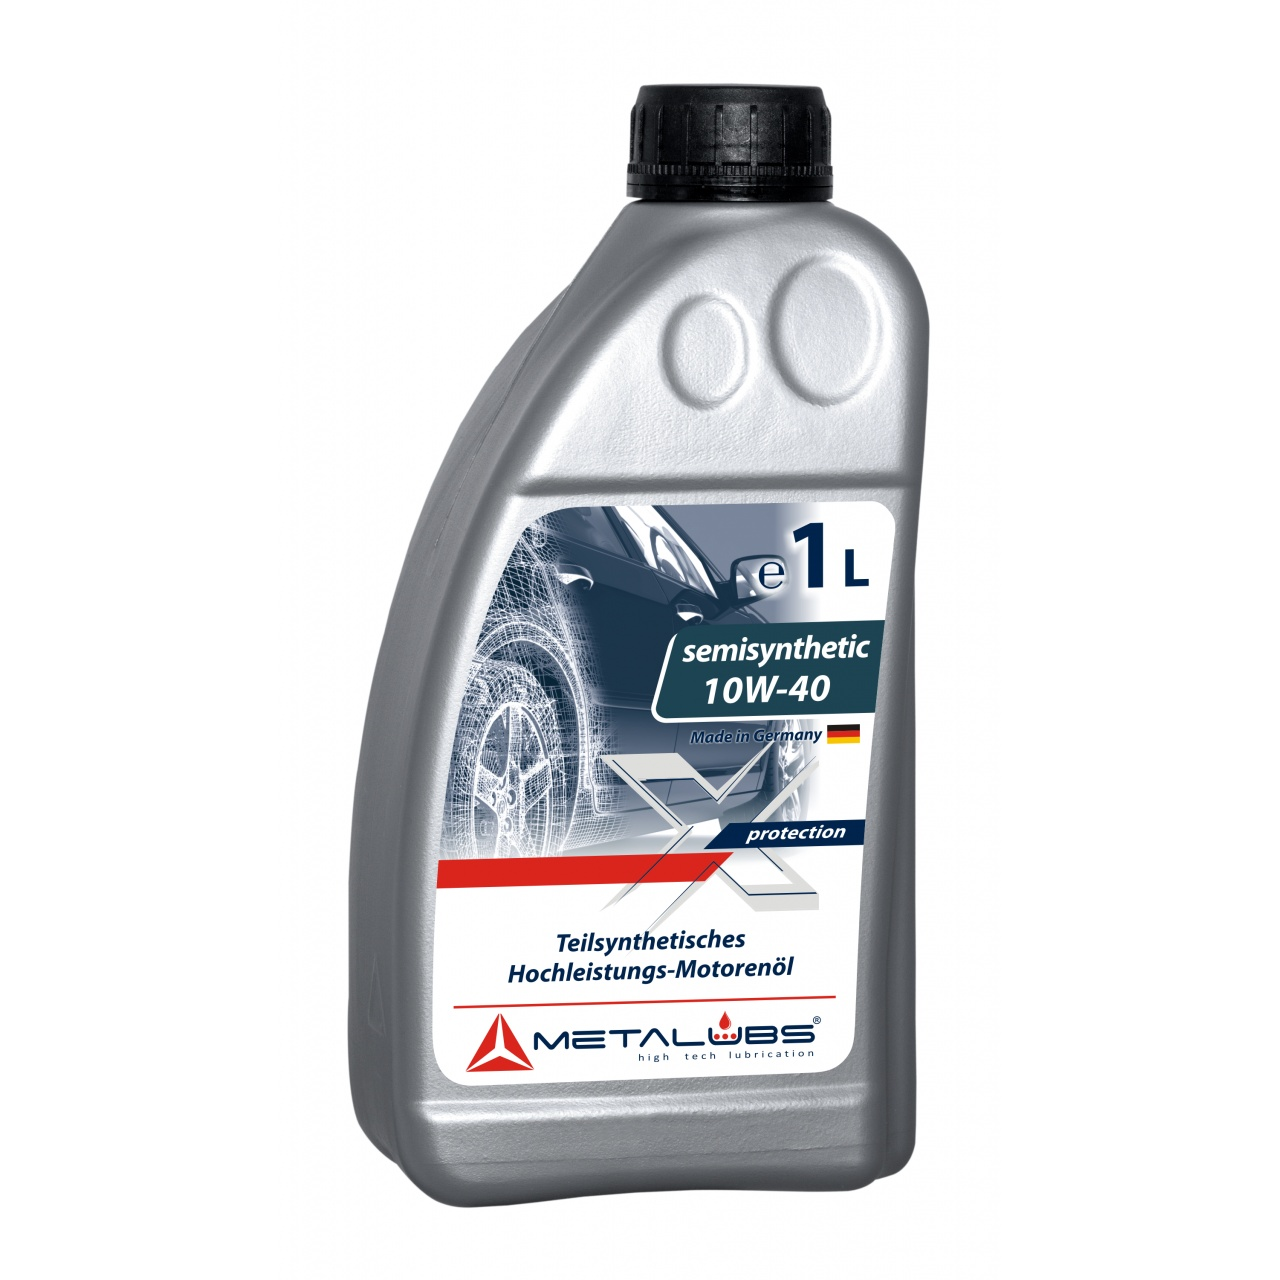 Metalubs Semi-Synthetic Oil 10W-40 1l